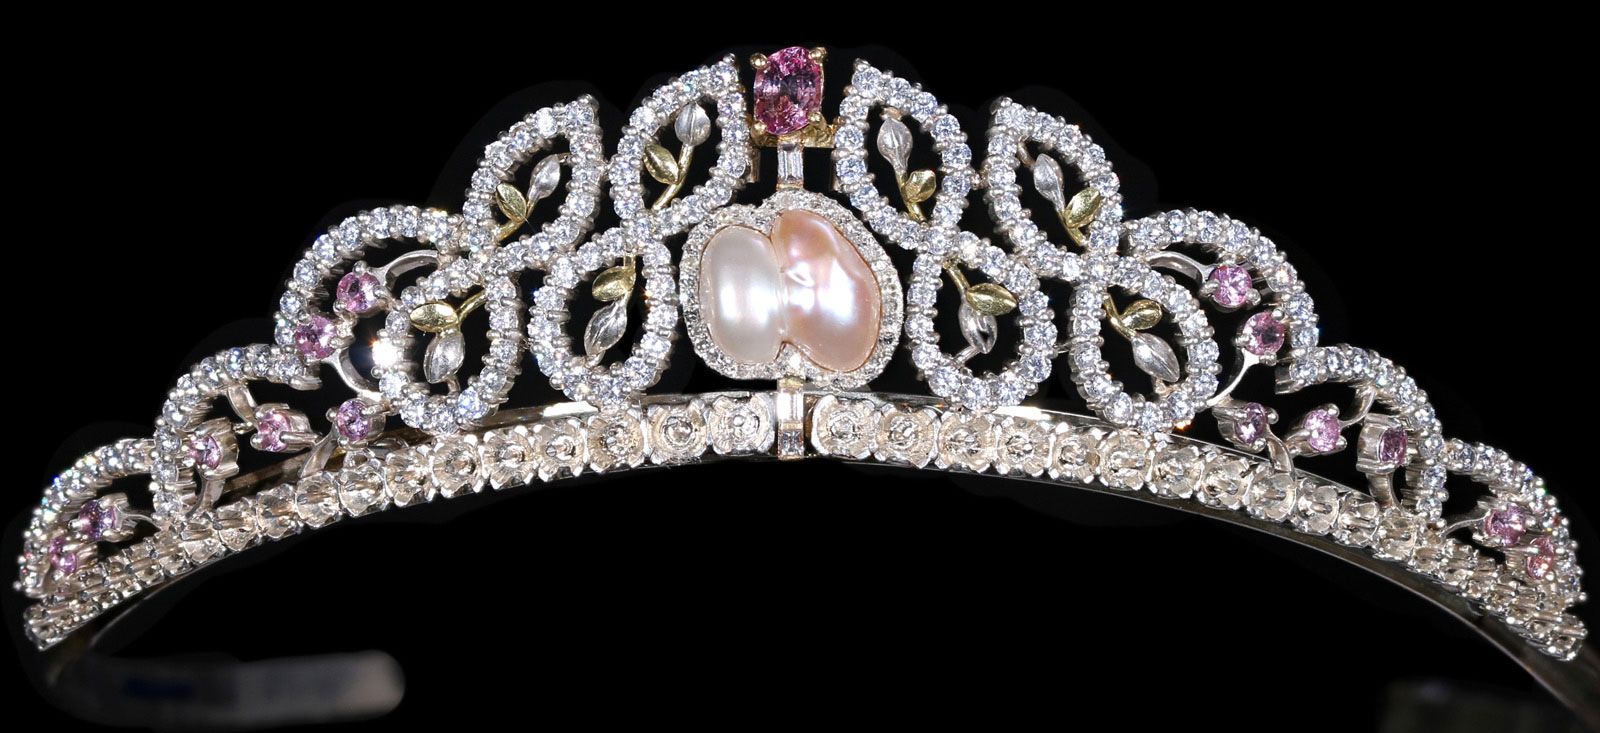 The Victoria tiara in Pink Sapphire, two color pink and with baroque pearl, with Diamonds in hallmarked 18ct Gold and Silver